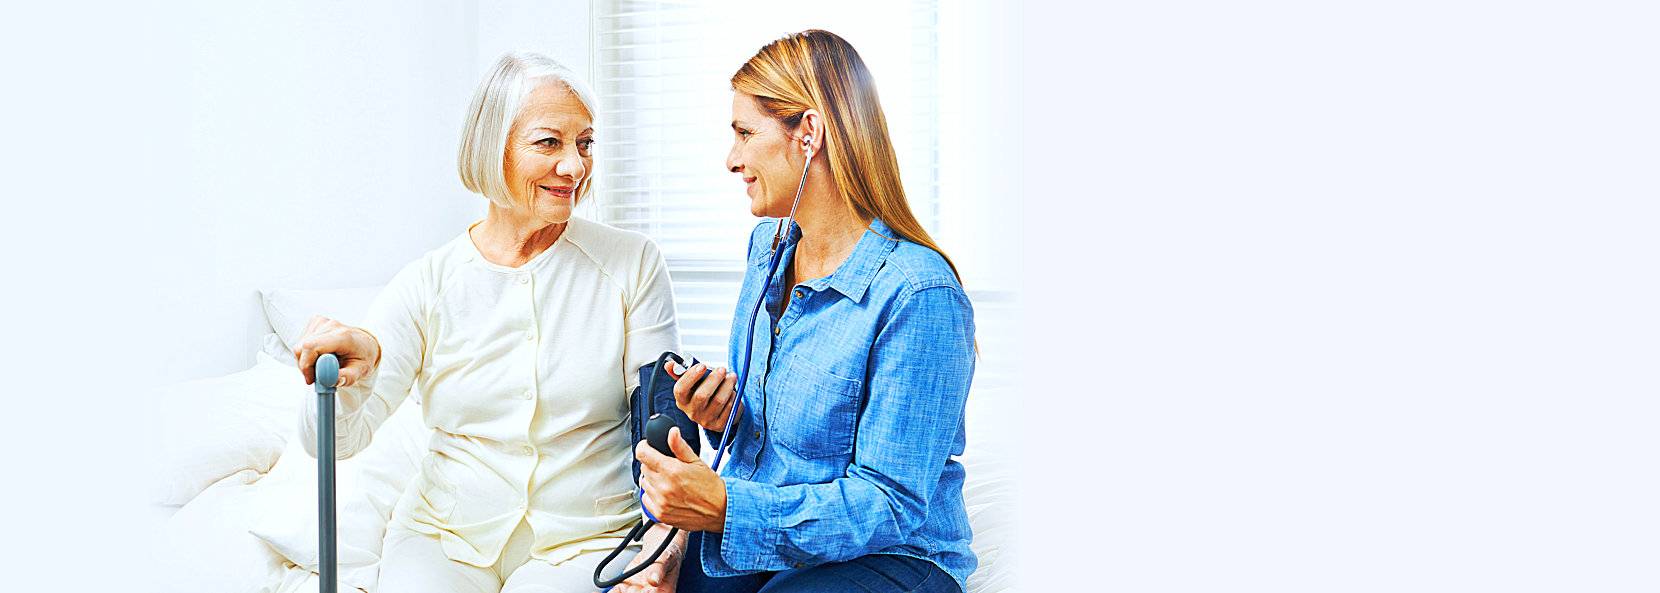 staff check the blood pressure of elder woman